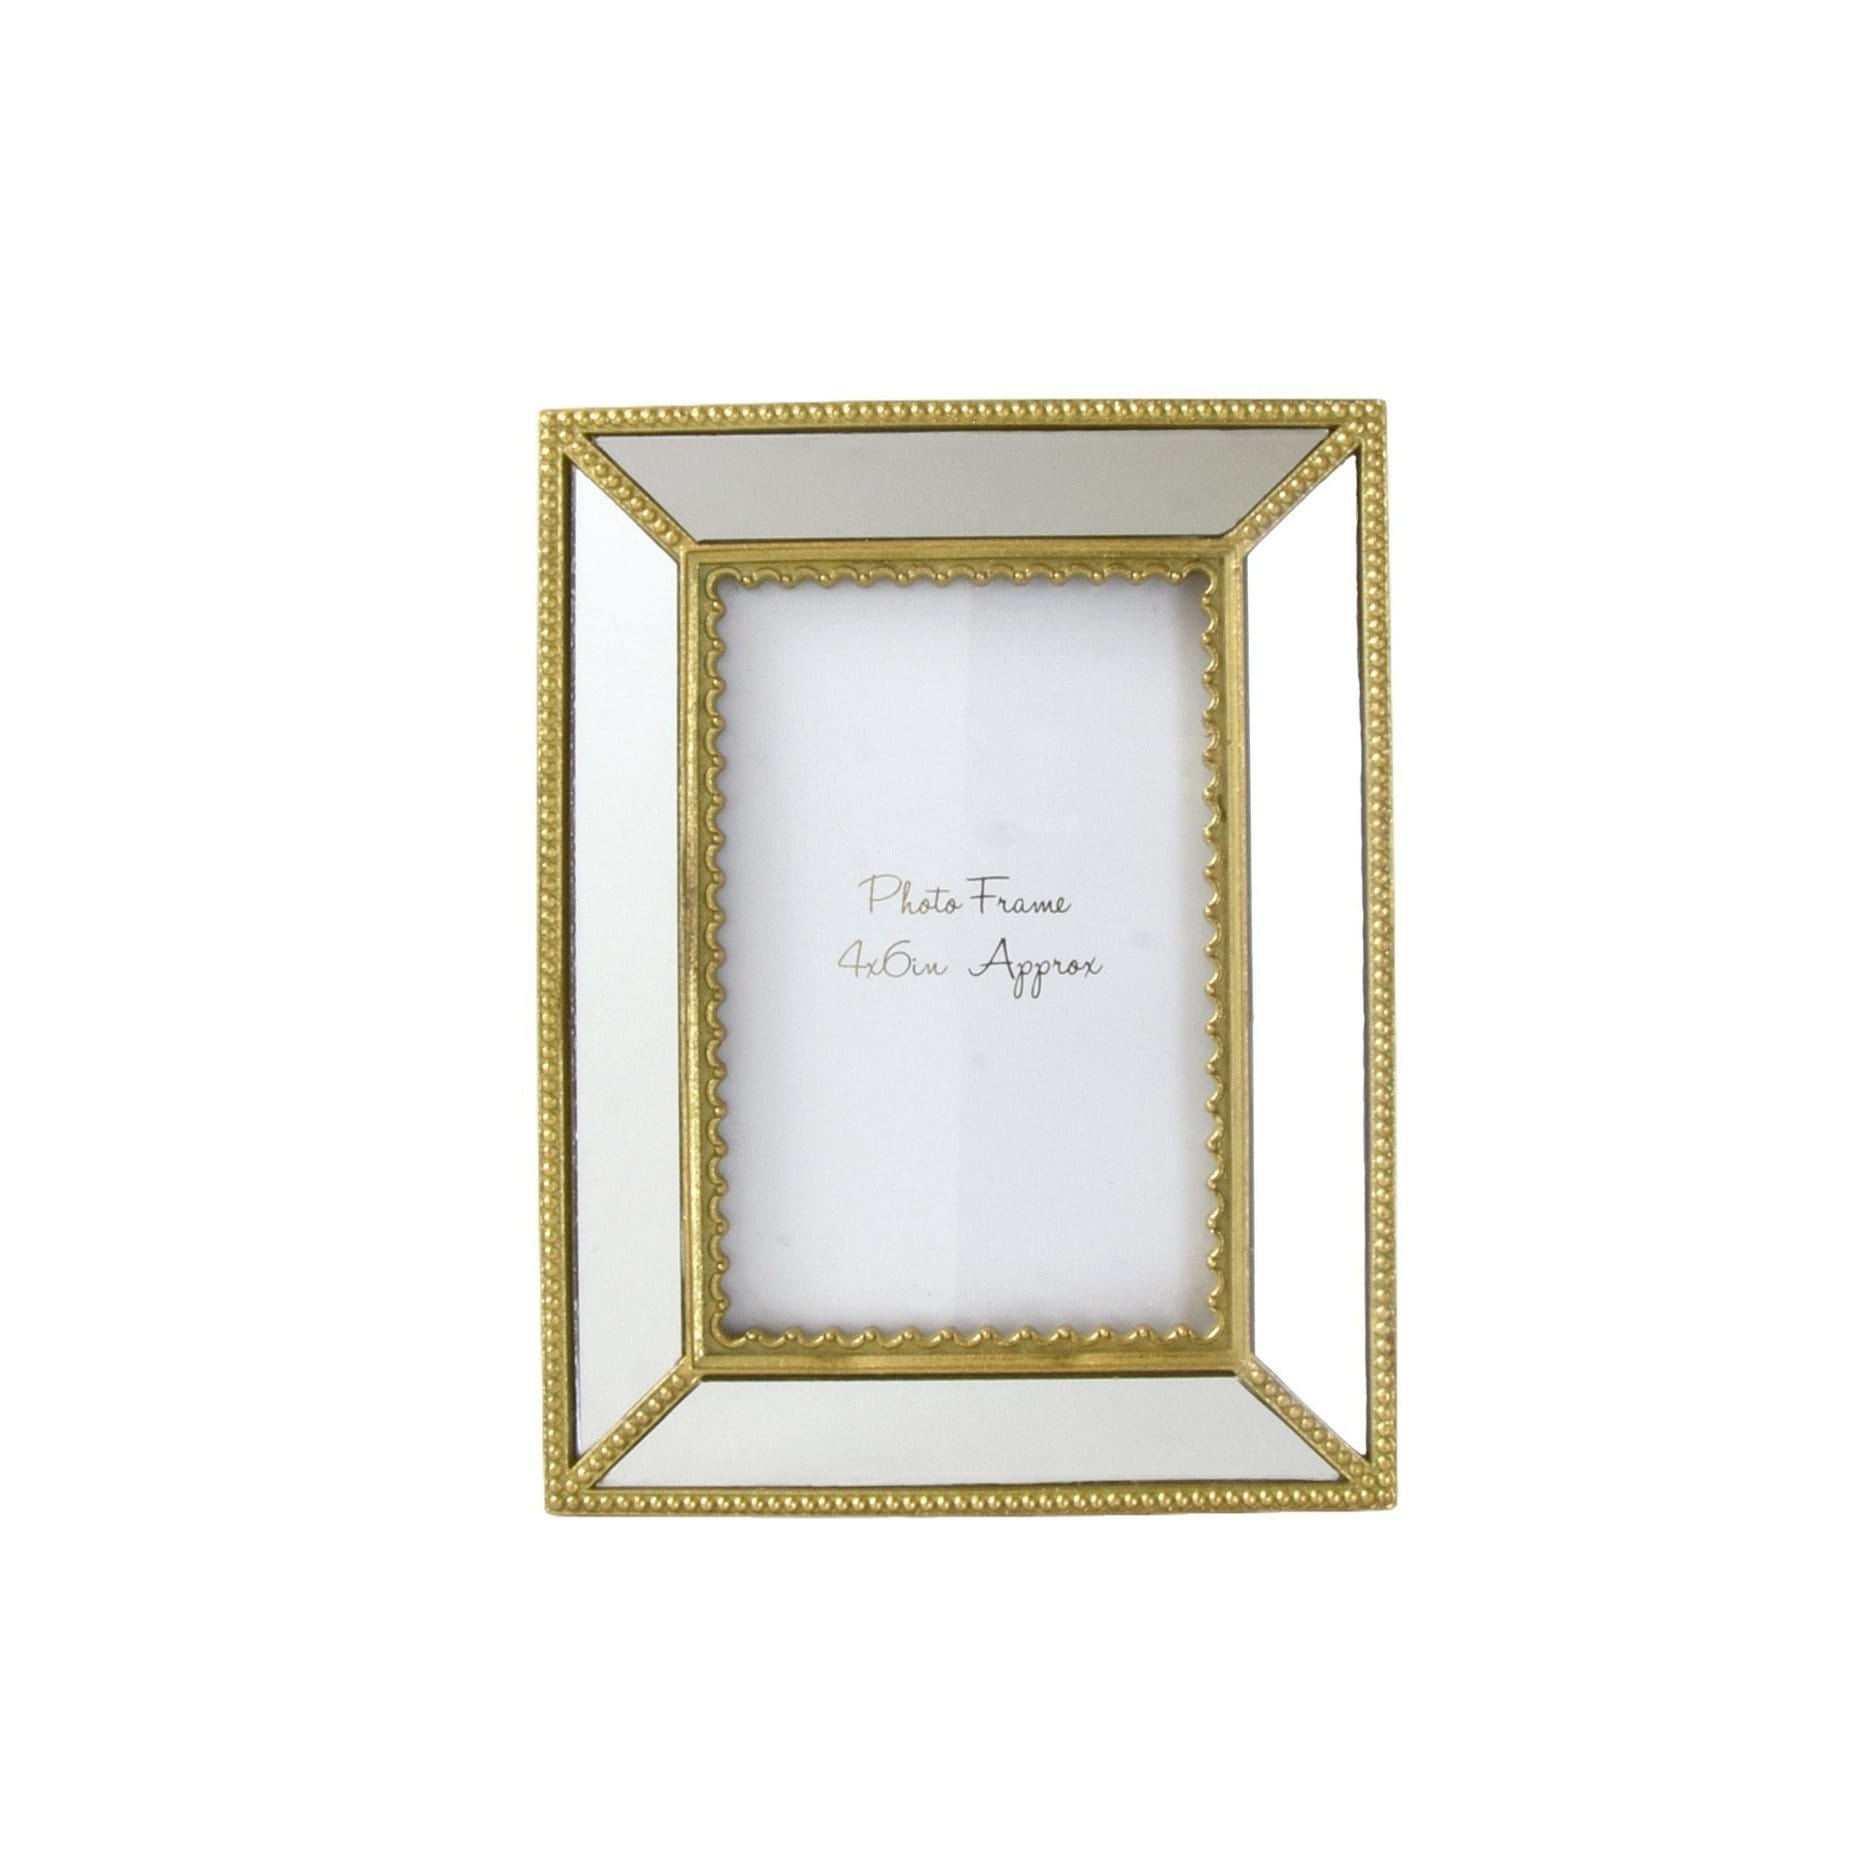 "Candlelight Home Photo Frame 4X6"" ORNATE PHOTO FRAME WITH MIRRORRED PANELS 1PK"